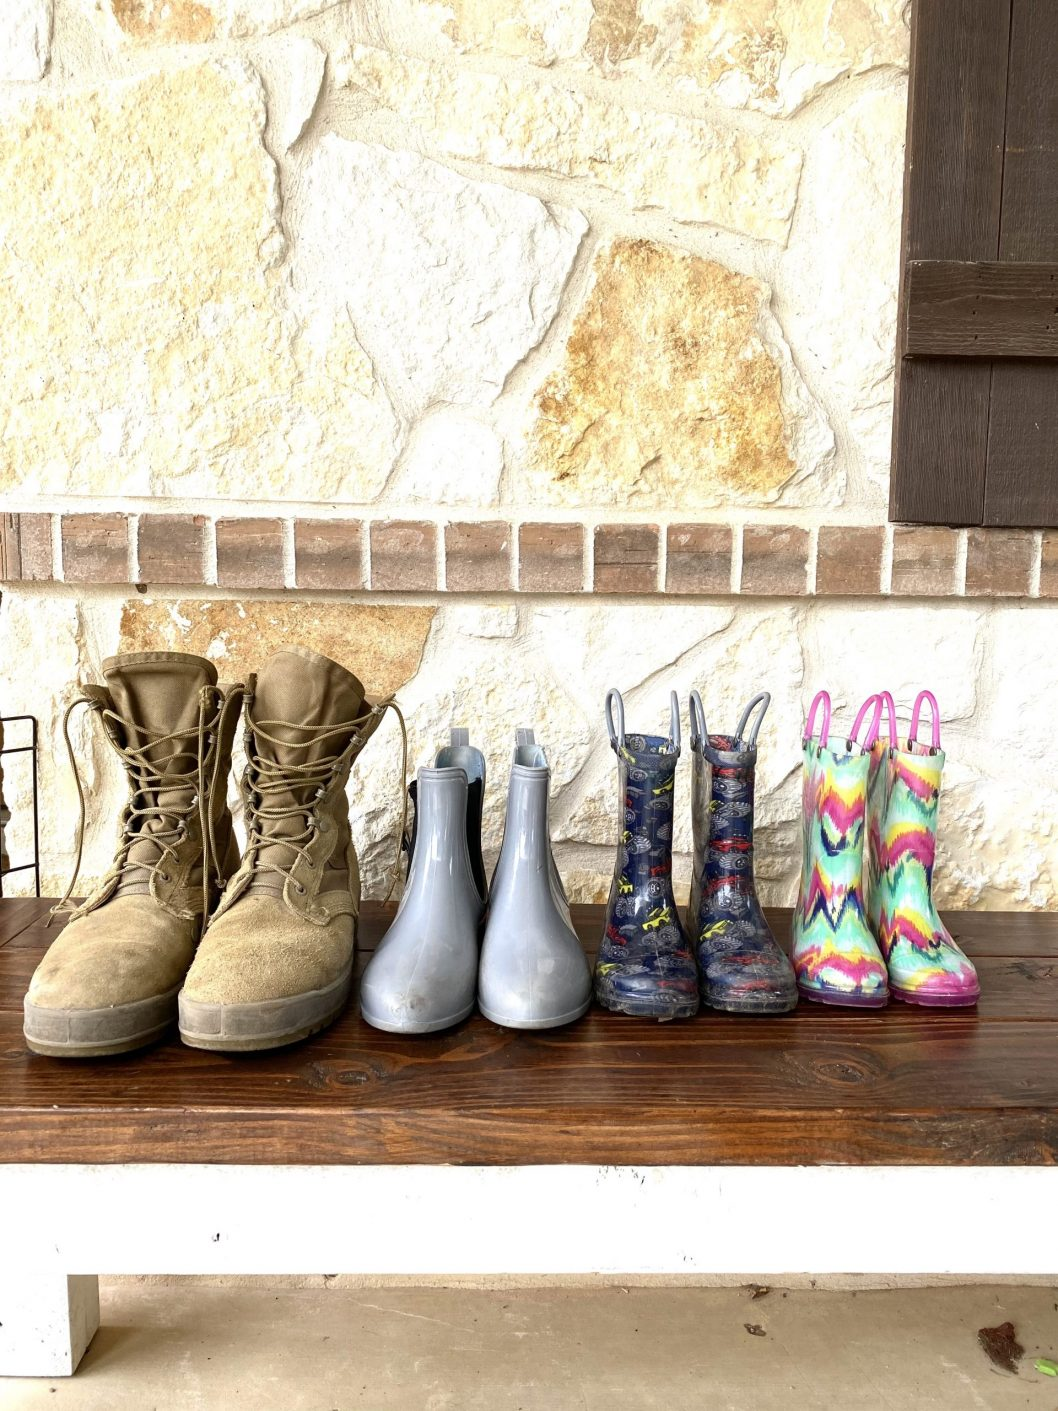 Military boots lined up alongside family boots